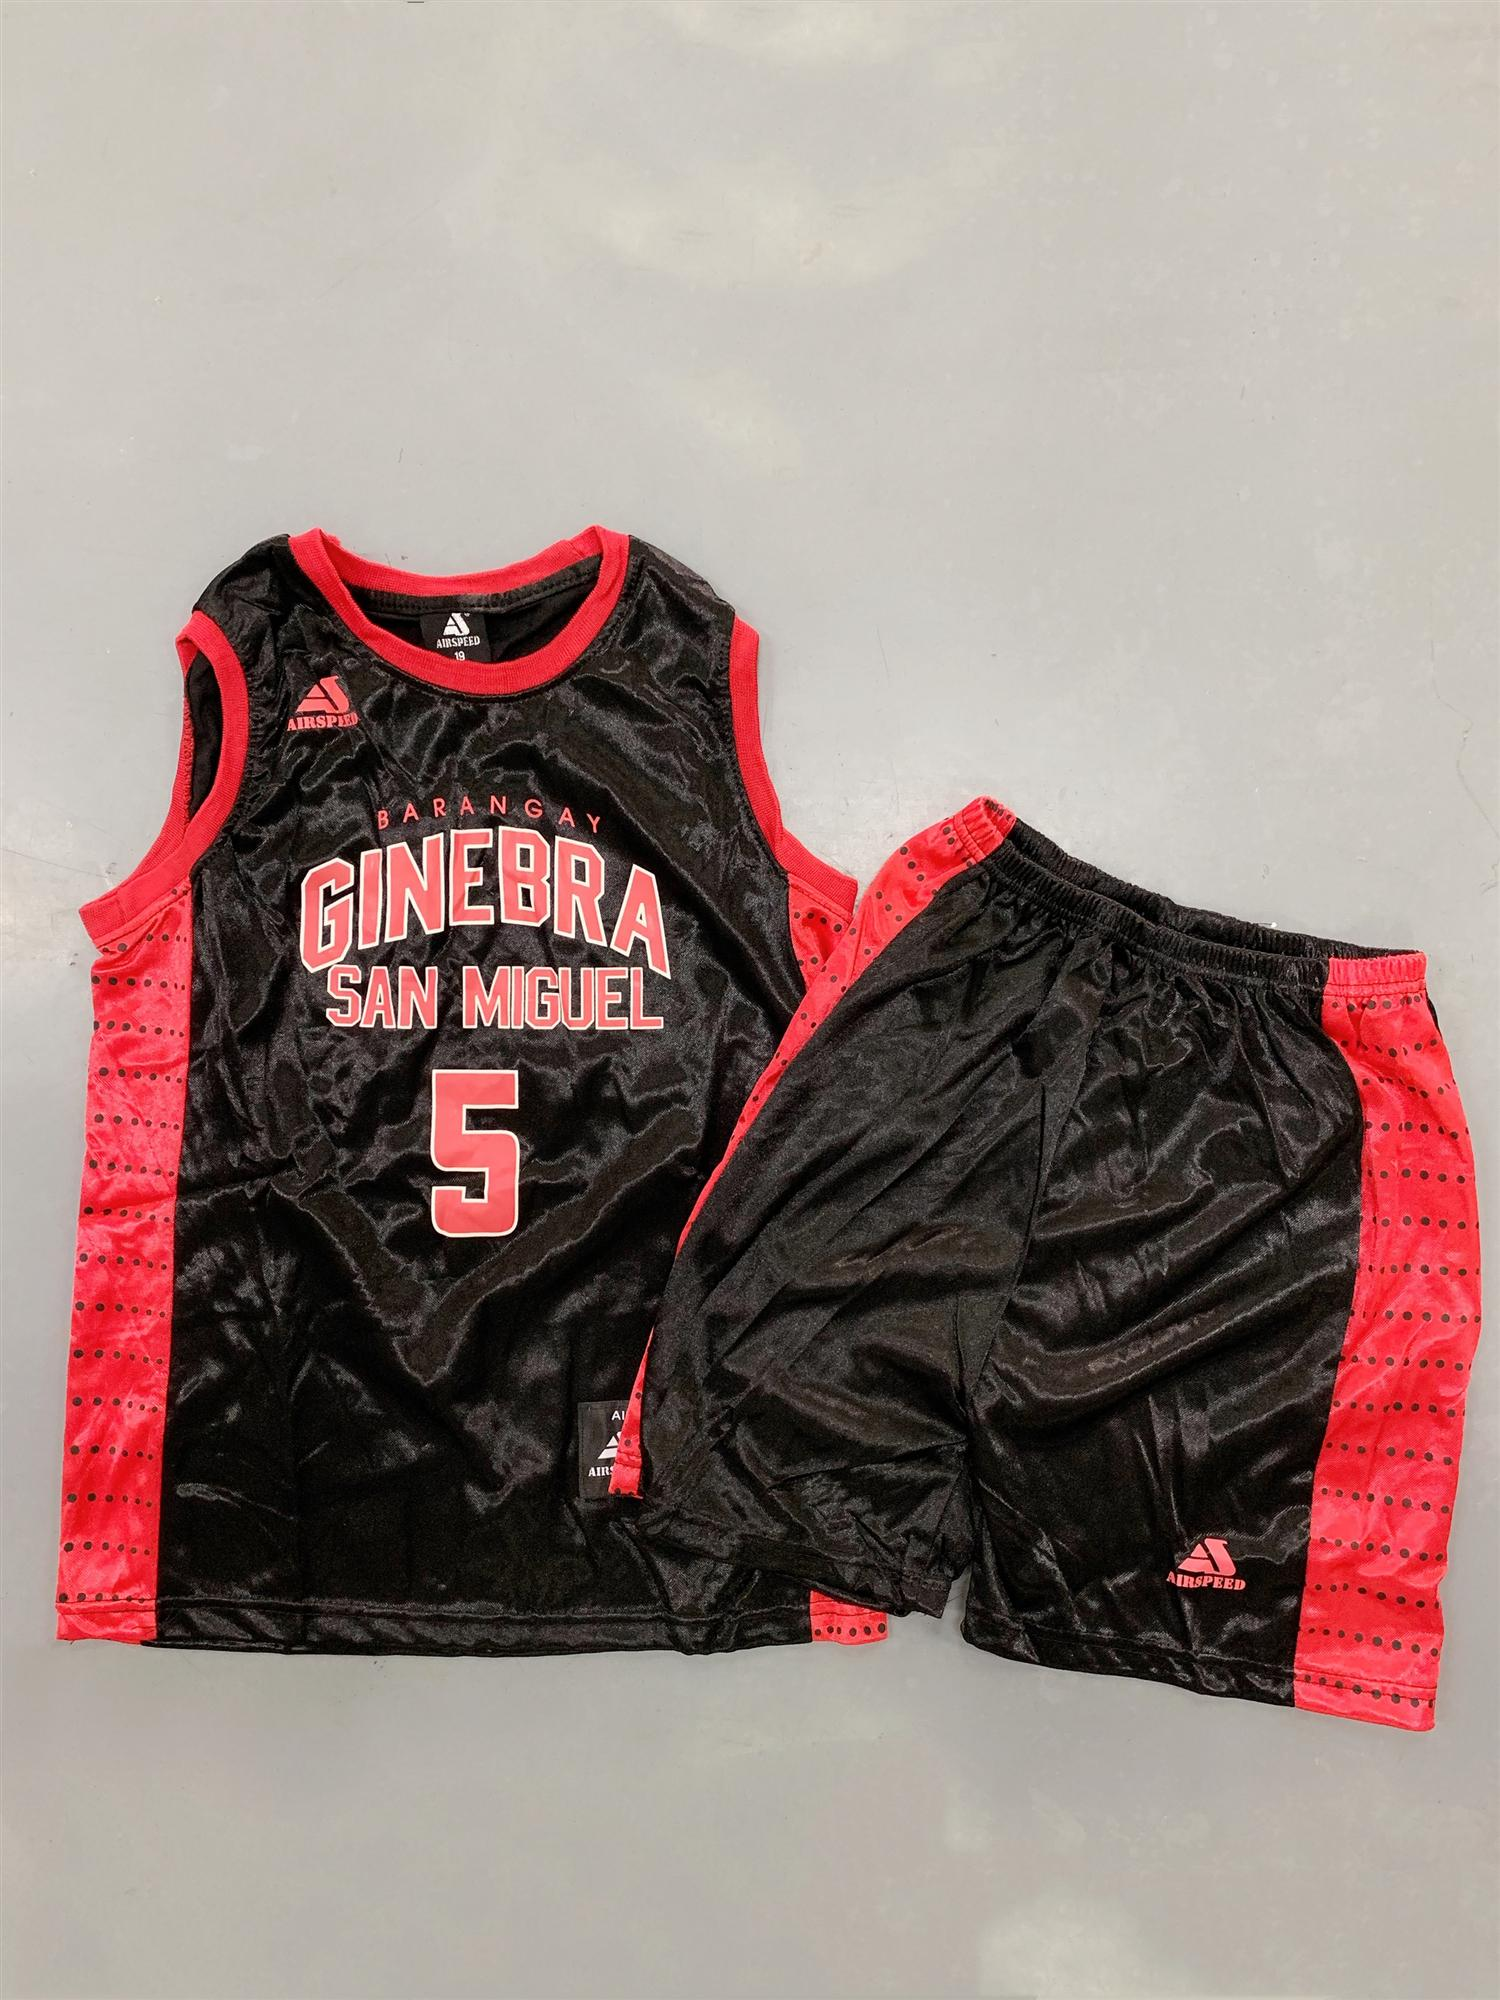 NBA Terno Set Ginebra san miguel 5 Swingman Jersey Embroidery High Quality  Class A Breathable Sports Basketball